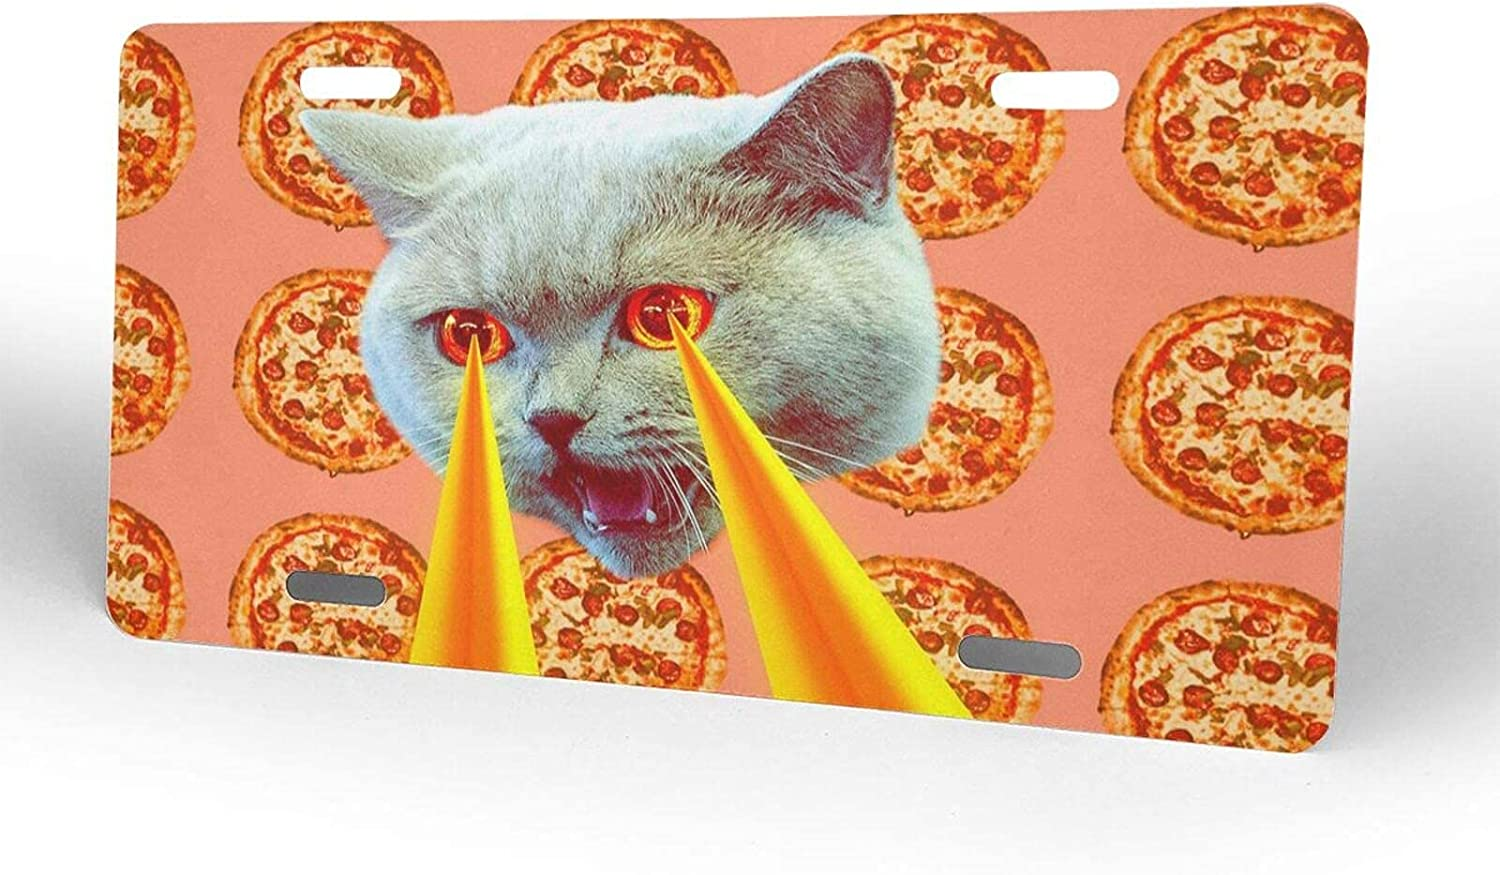 Pizza Cat Lasers from Eyes License Novelty Lic Plate Ranking TOP16 Ranking TOP18 Cover Metal